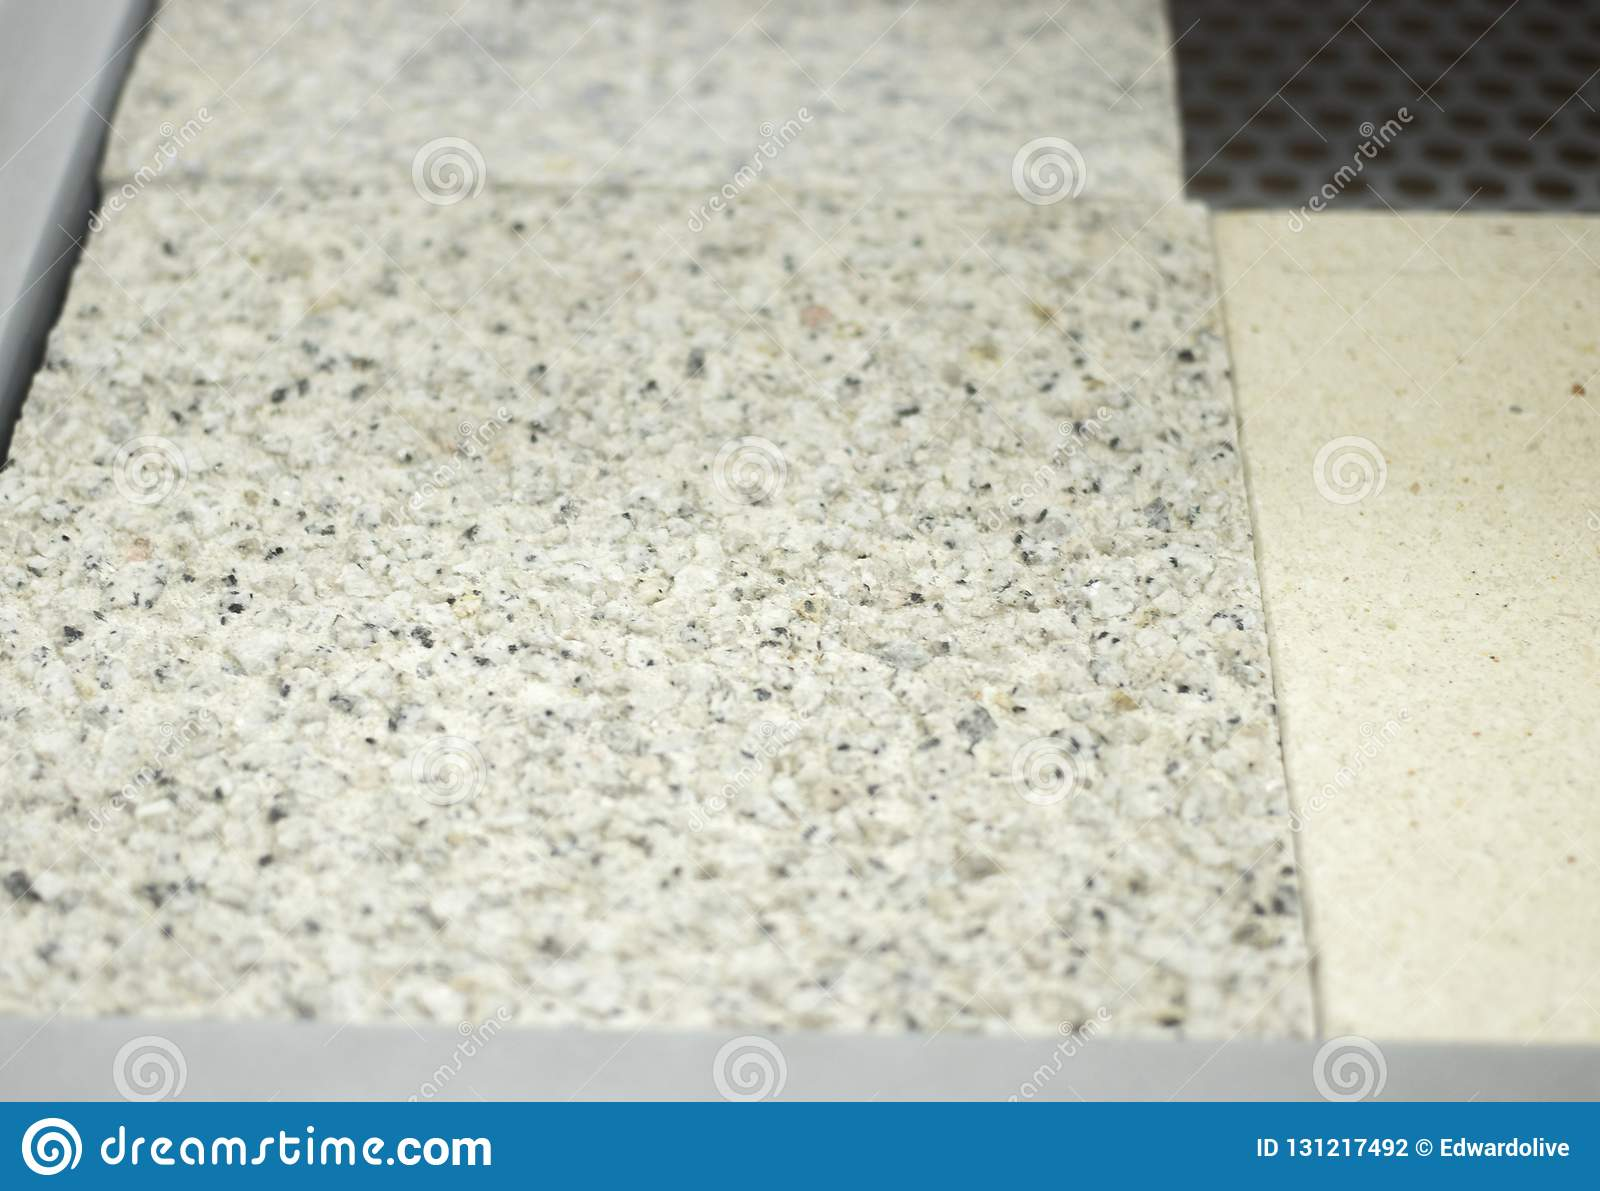 188 Granite Showroom Photos Free Royalty Free Stock Photos From Dreamstime